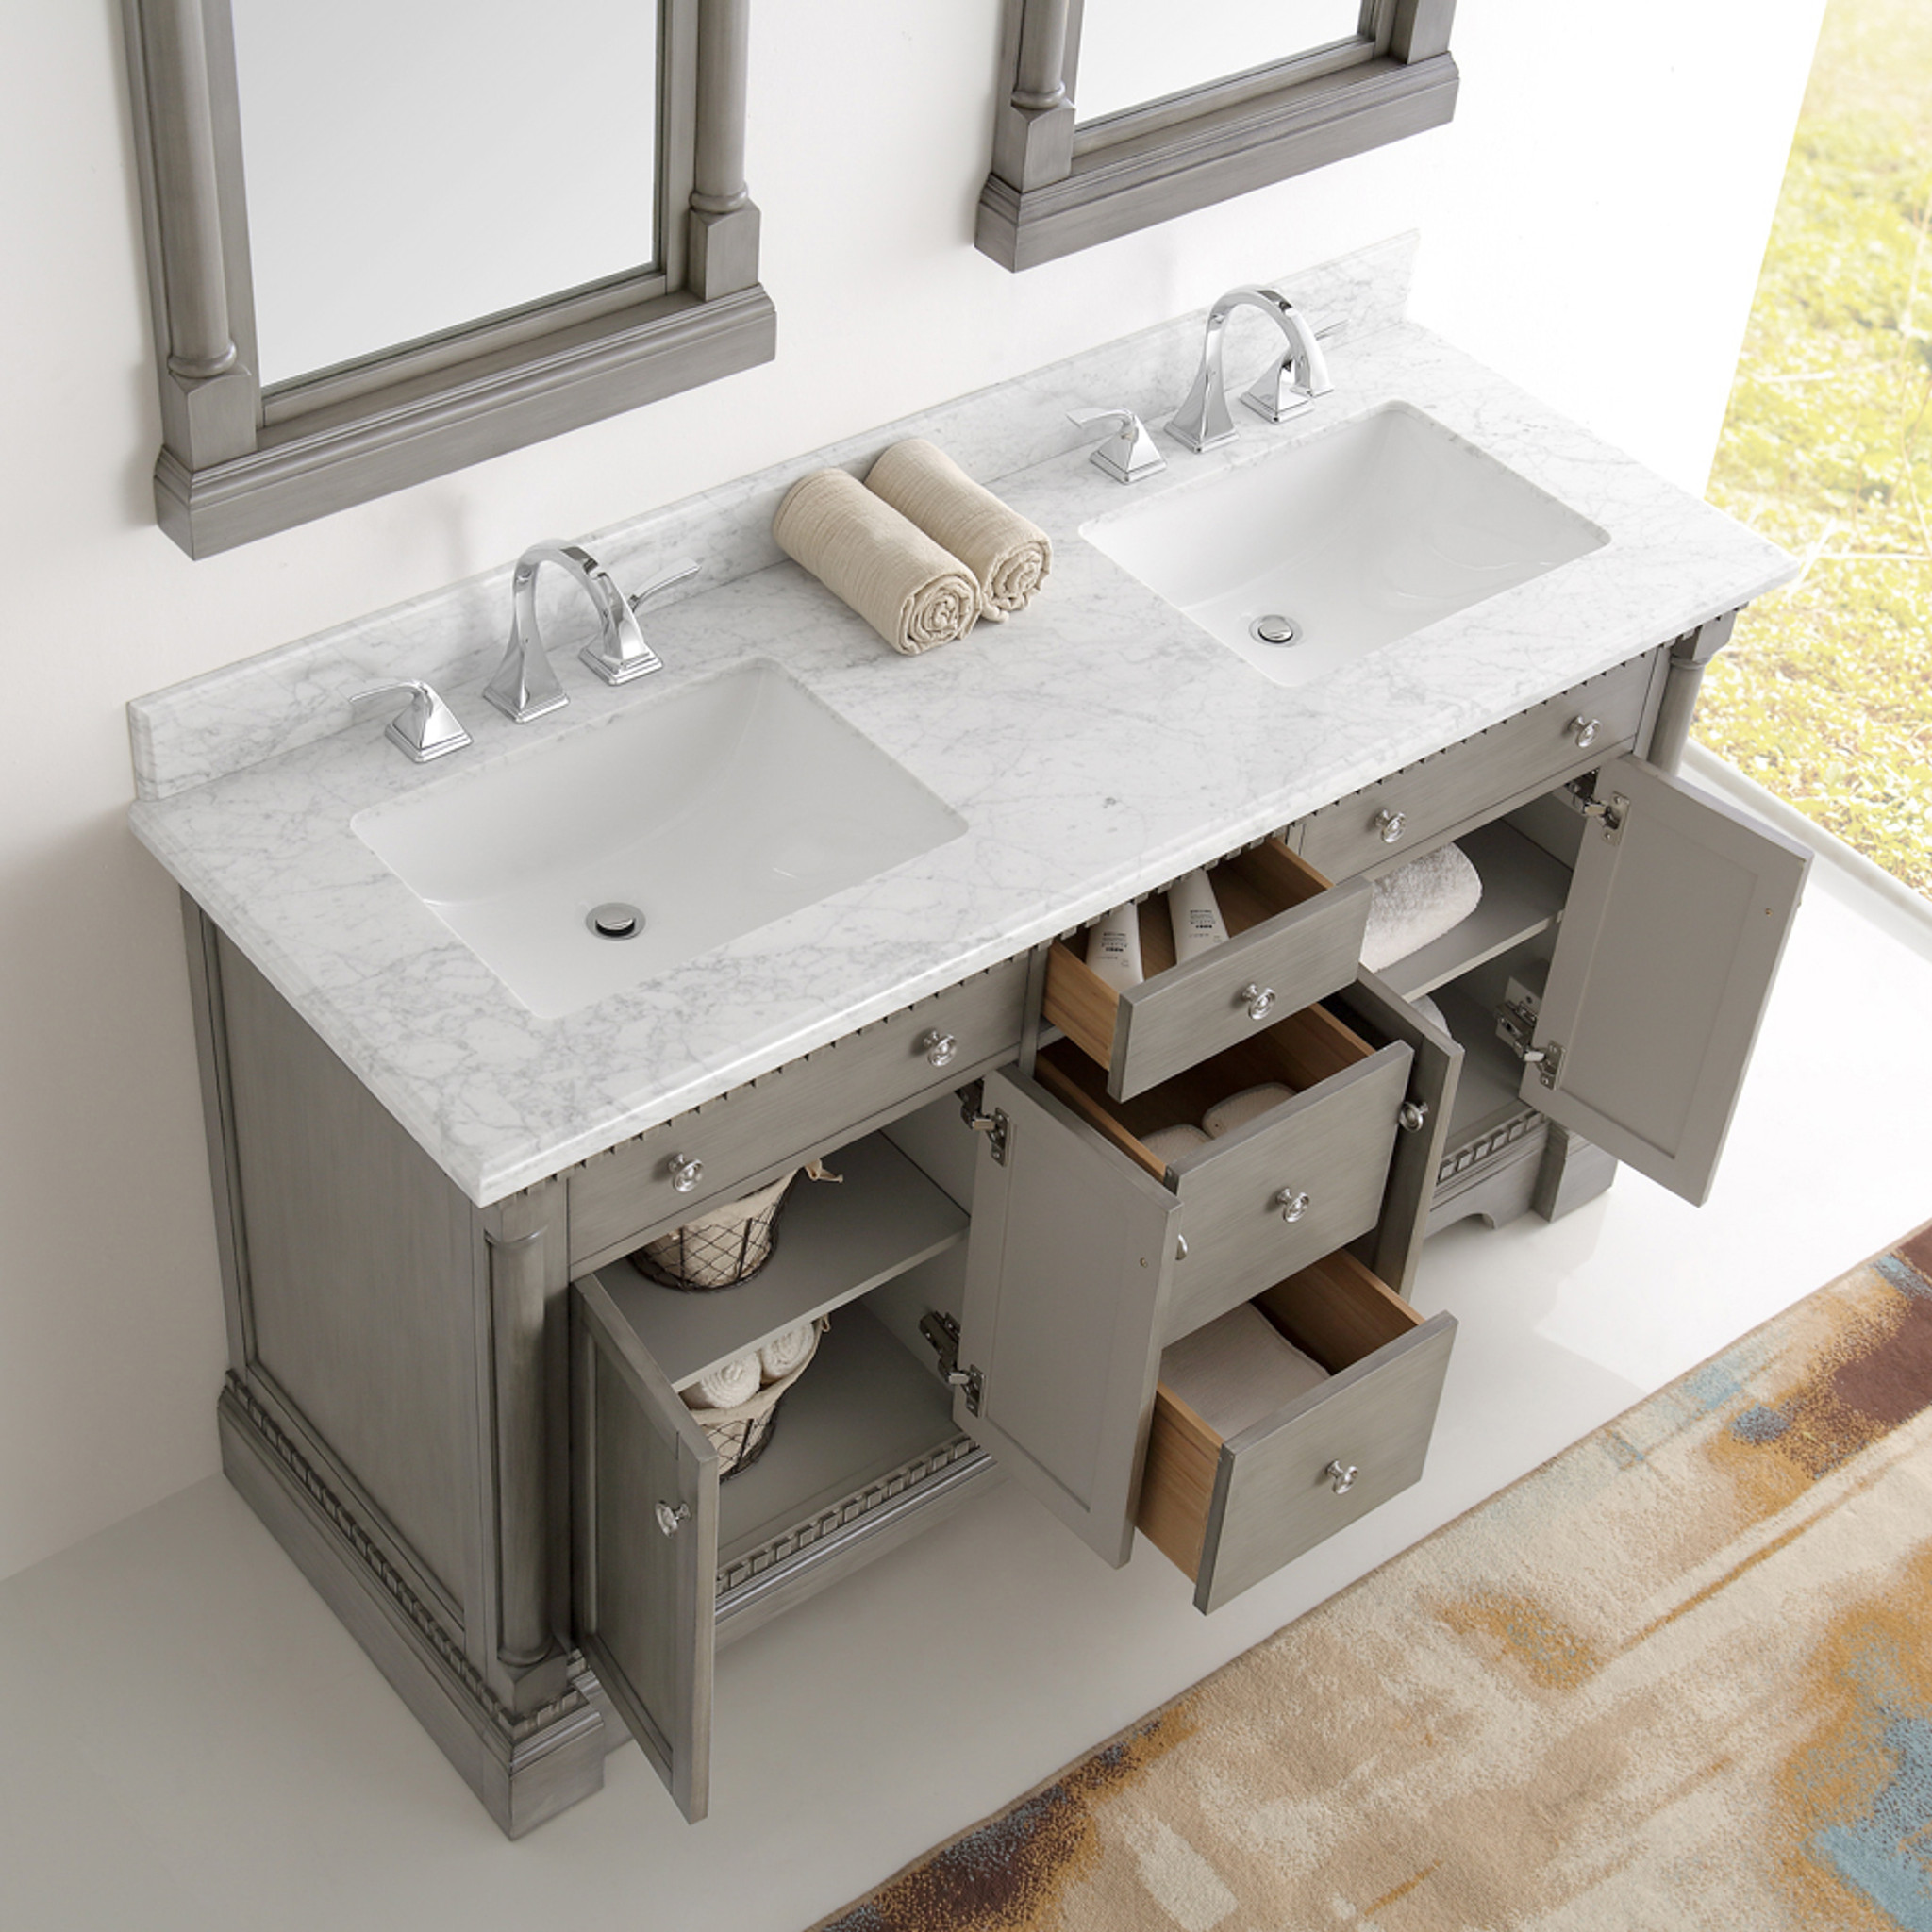 Countertops Compared: Top 5 Materials to Top off A Bathroom Vanity